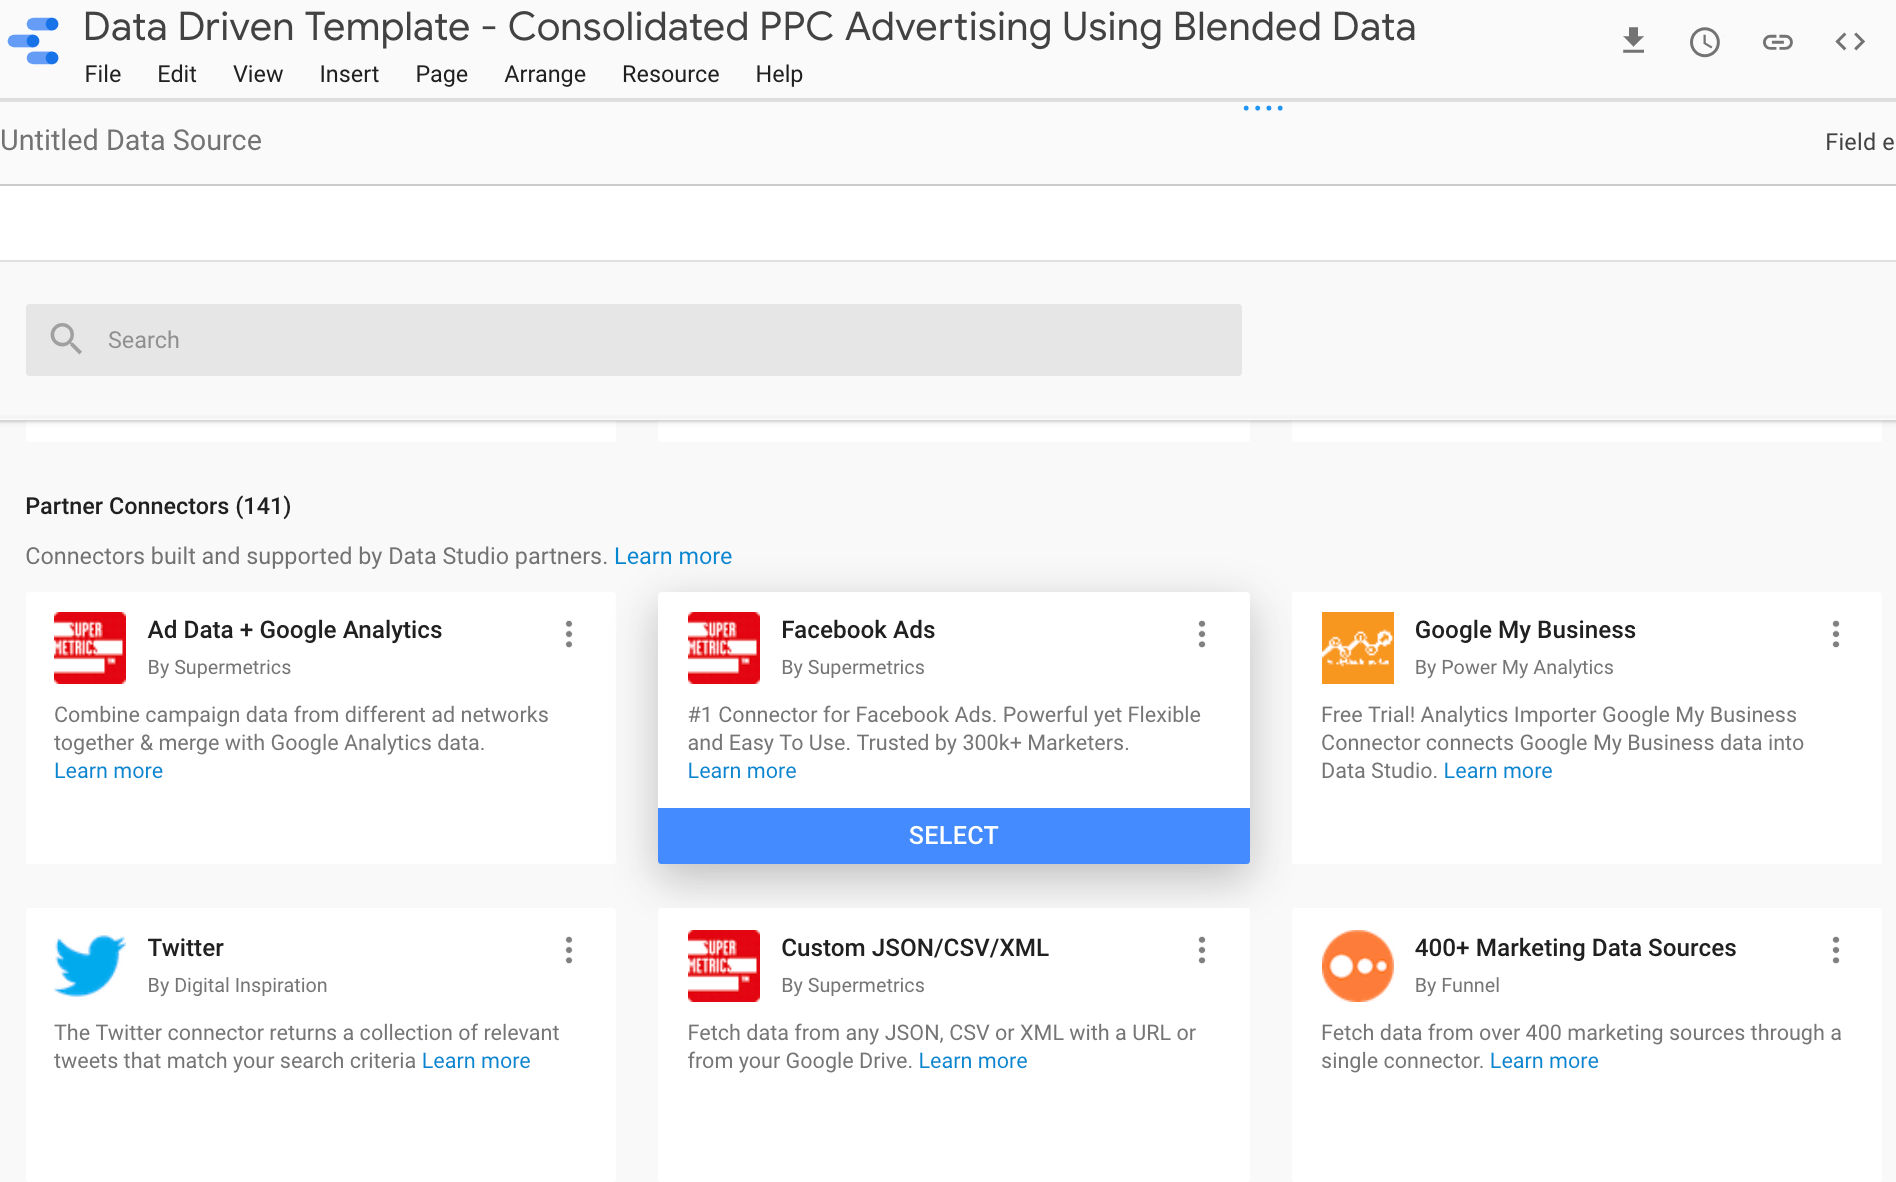 Connecting Data Sources in Google Data Studio